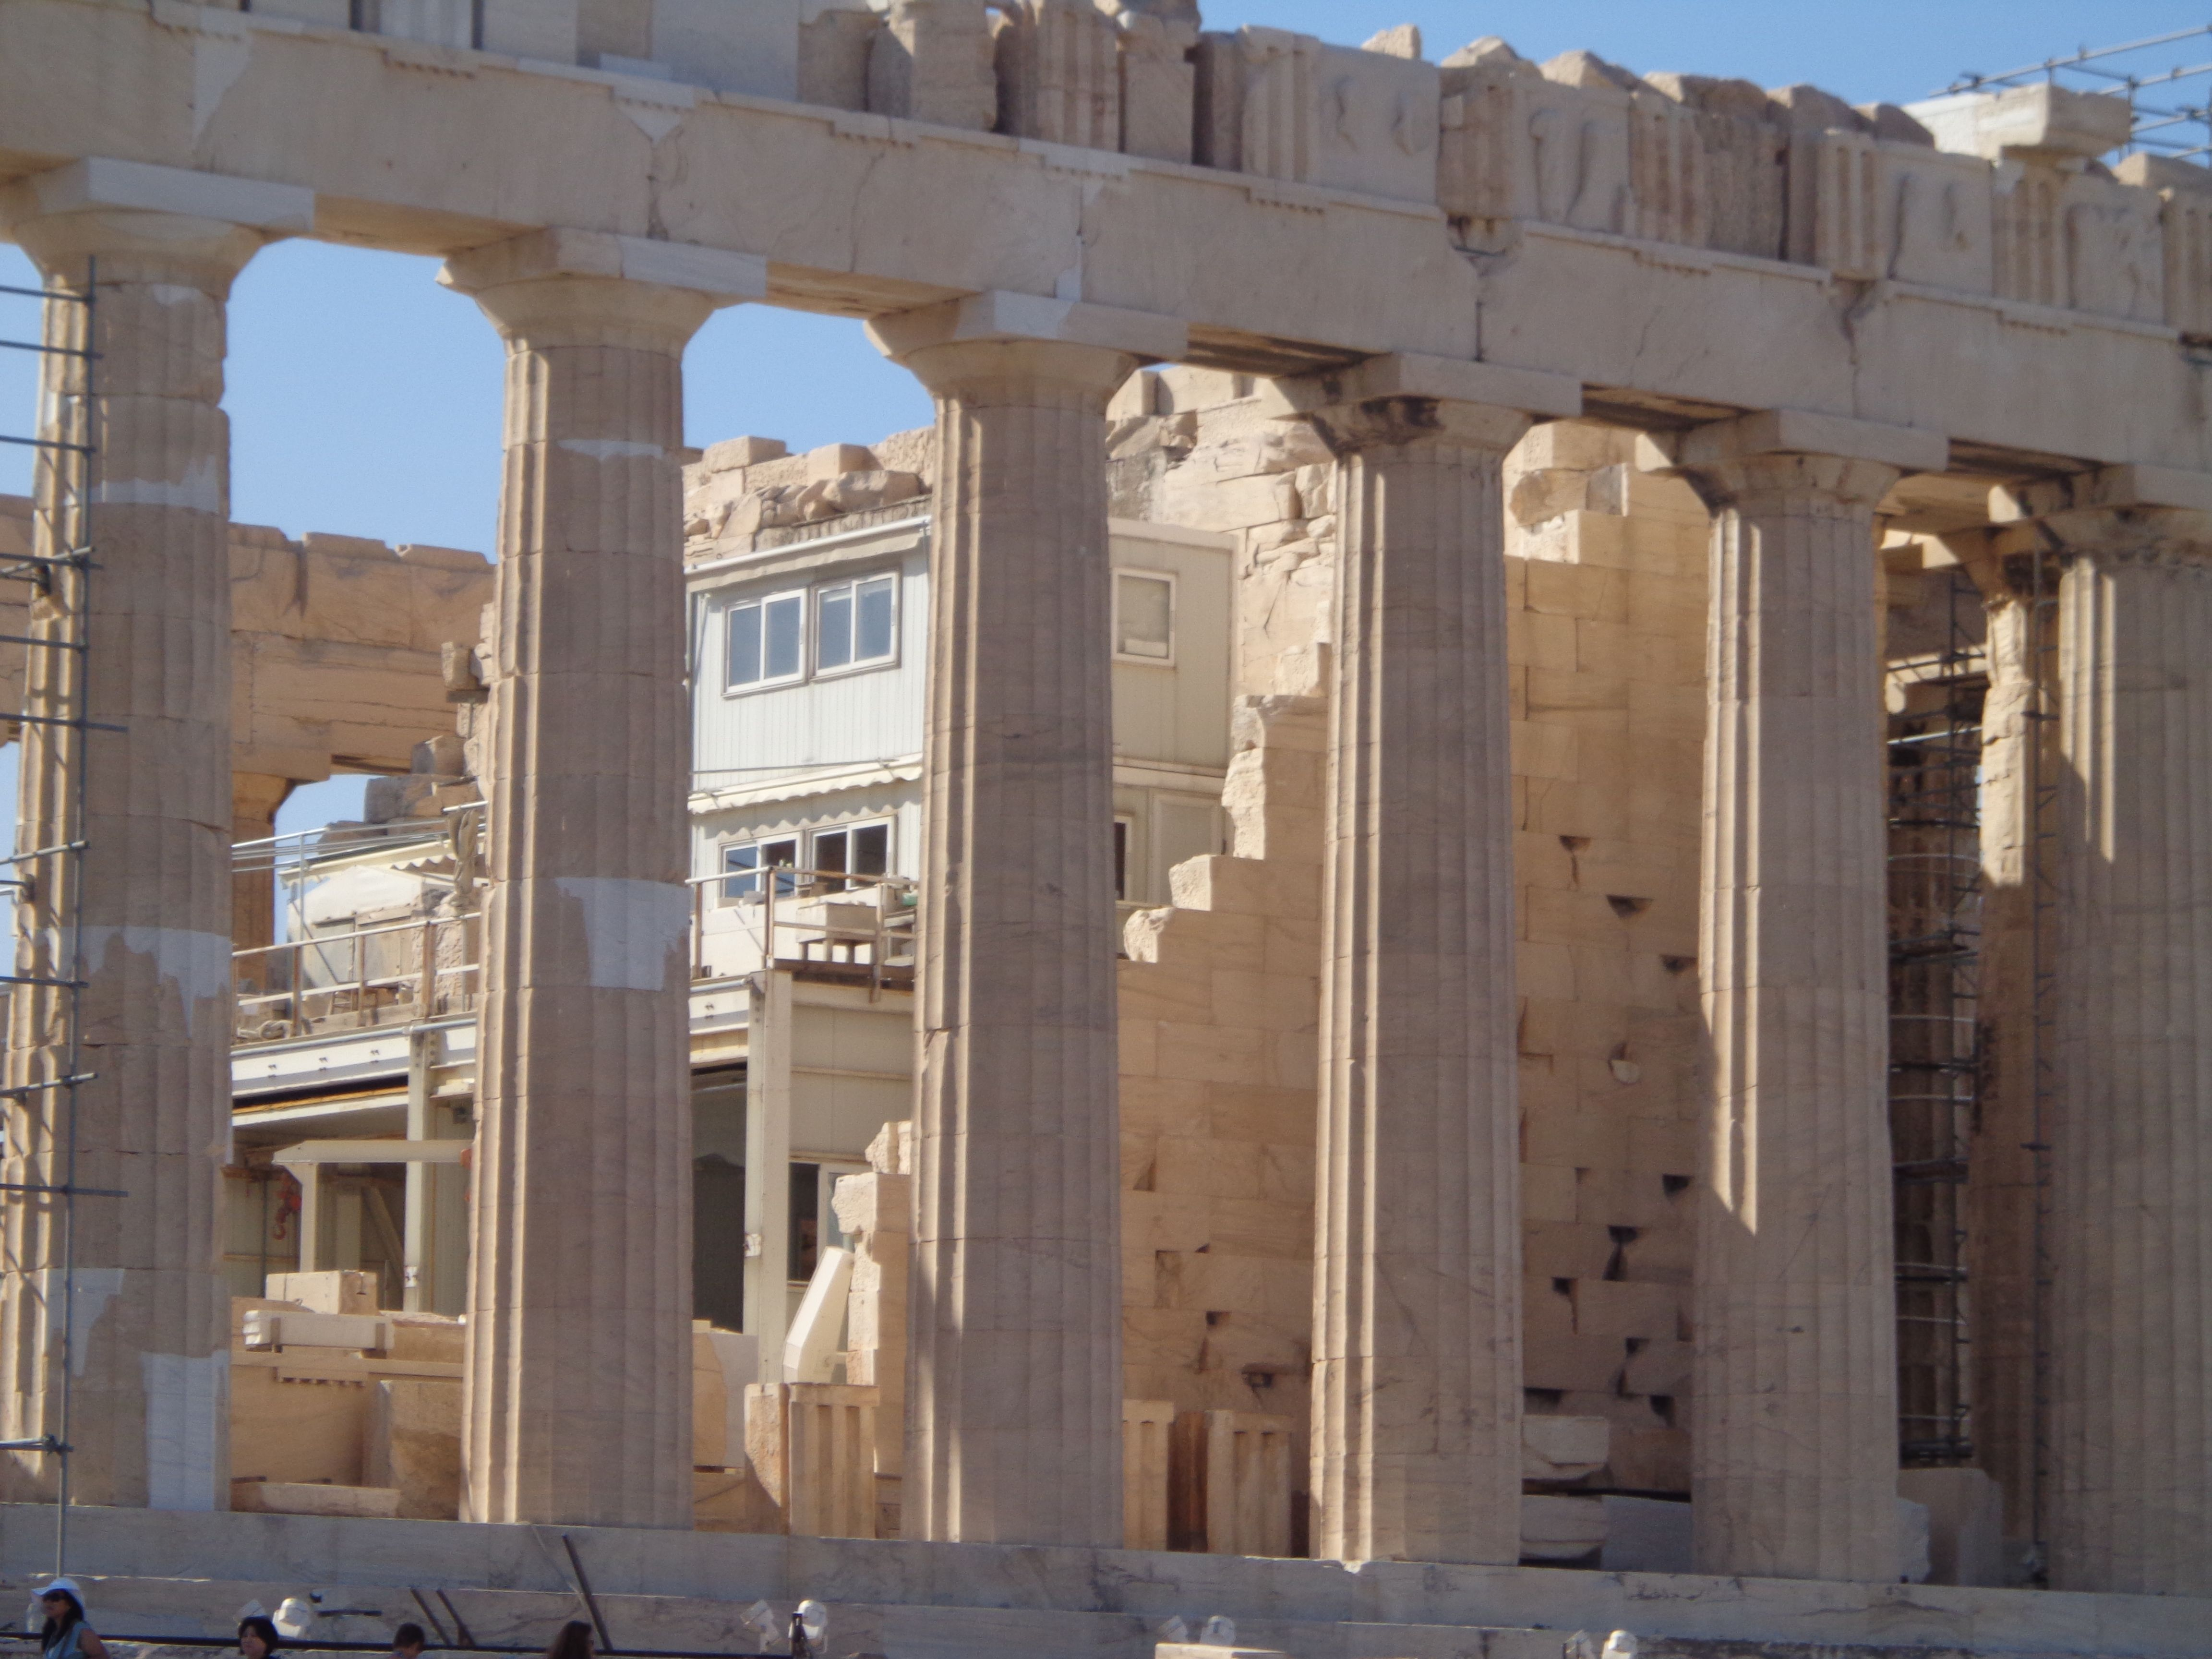 Ancient greek temple interior - Ancient Greece This Is Another View Of The Parthenon With Interior Construction And Exterior Doric Columns